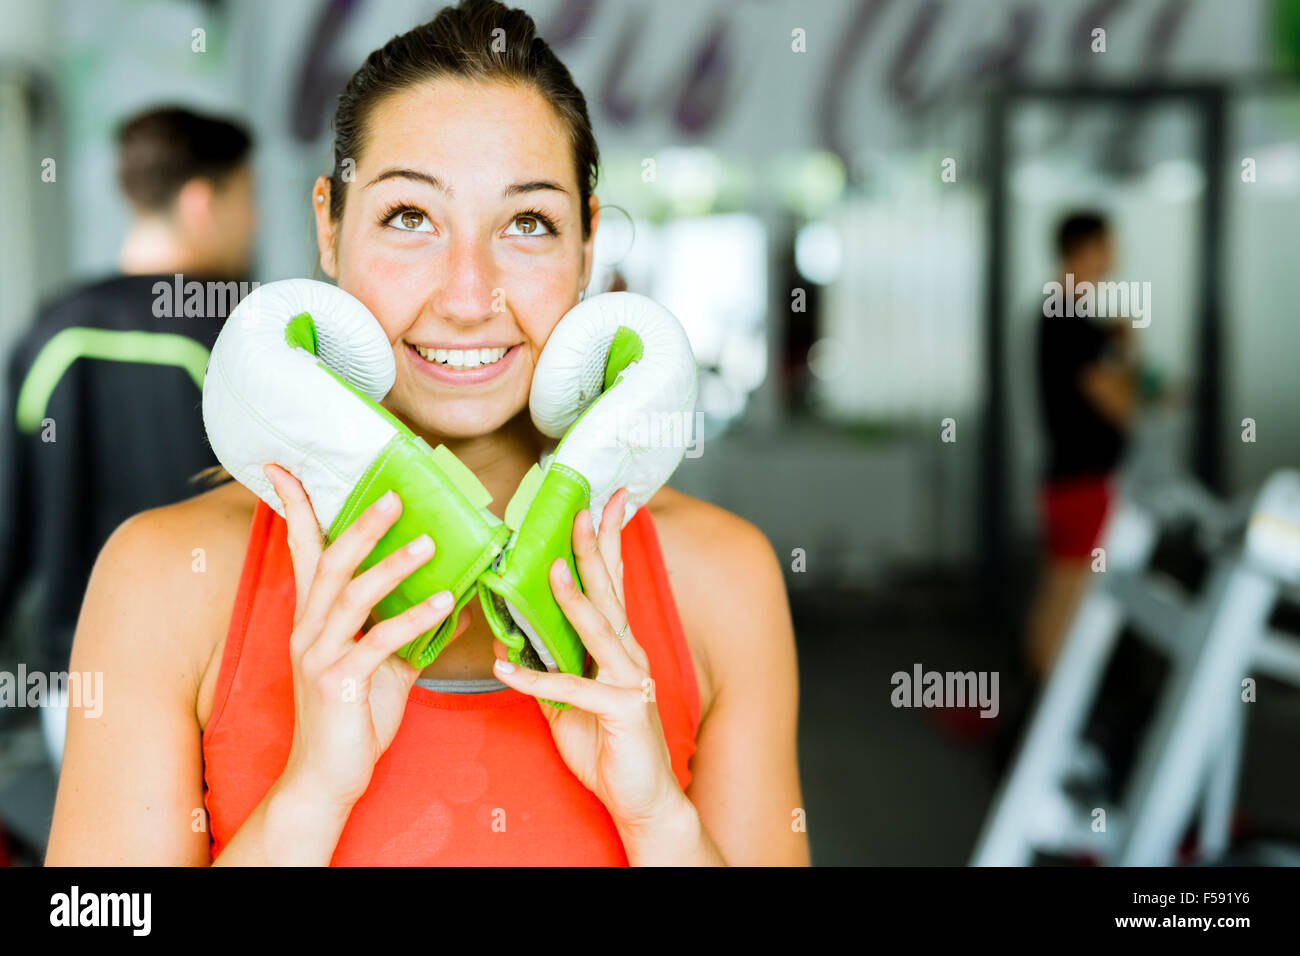 Young beautiful woman smiling and posing with boxing gloves in a gym Stock Photo